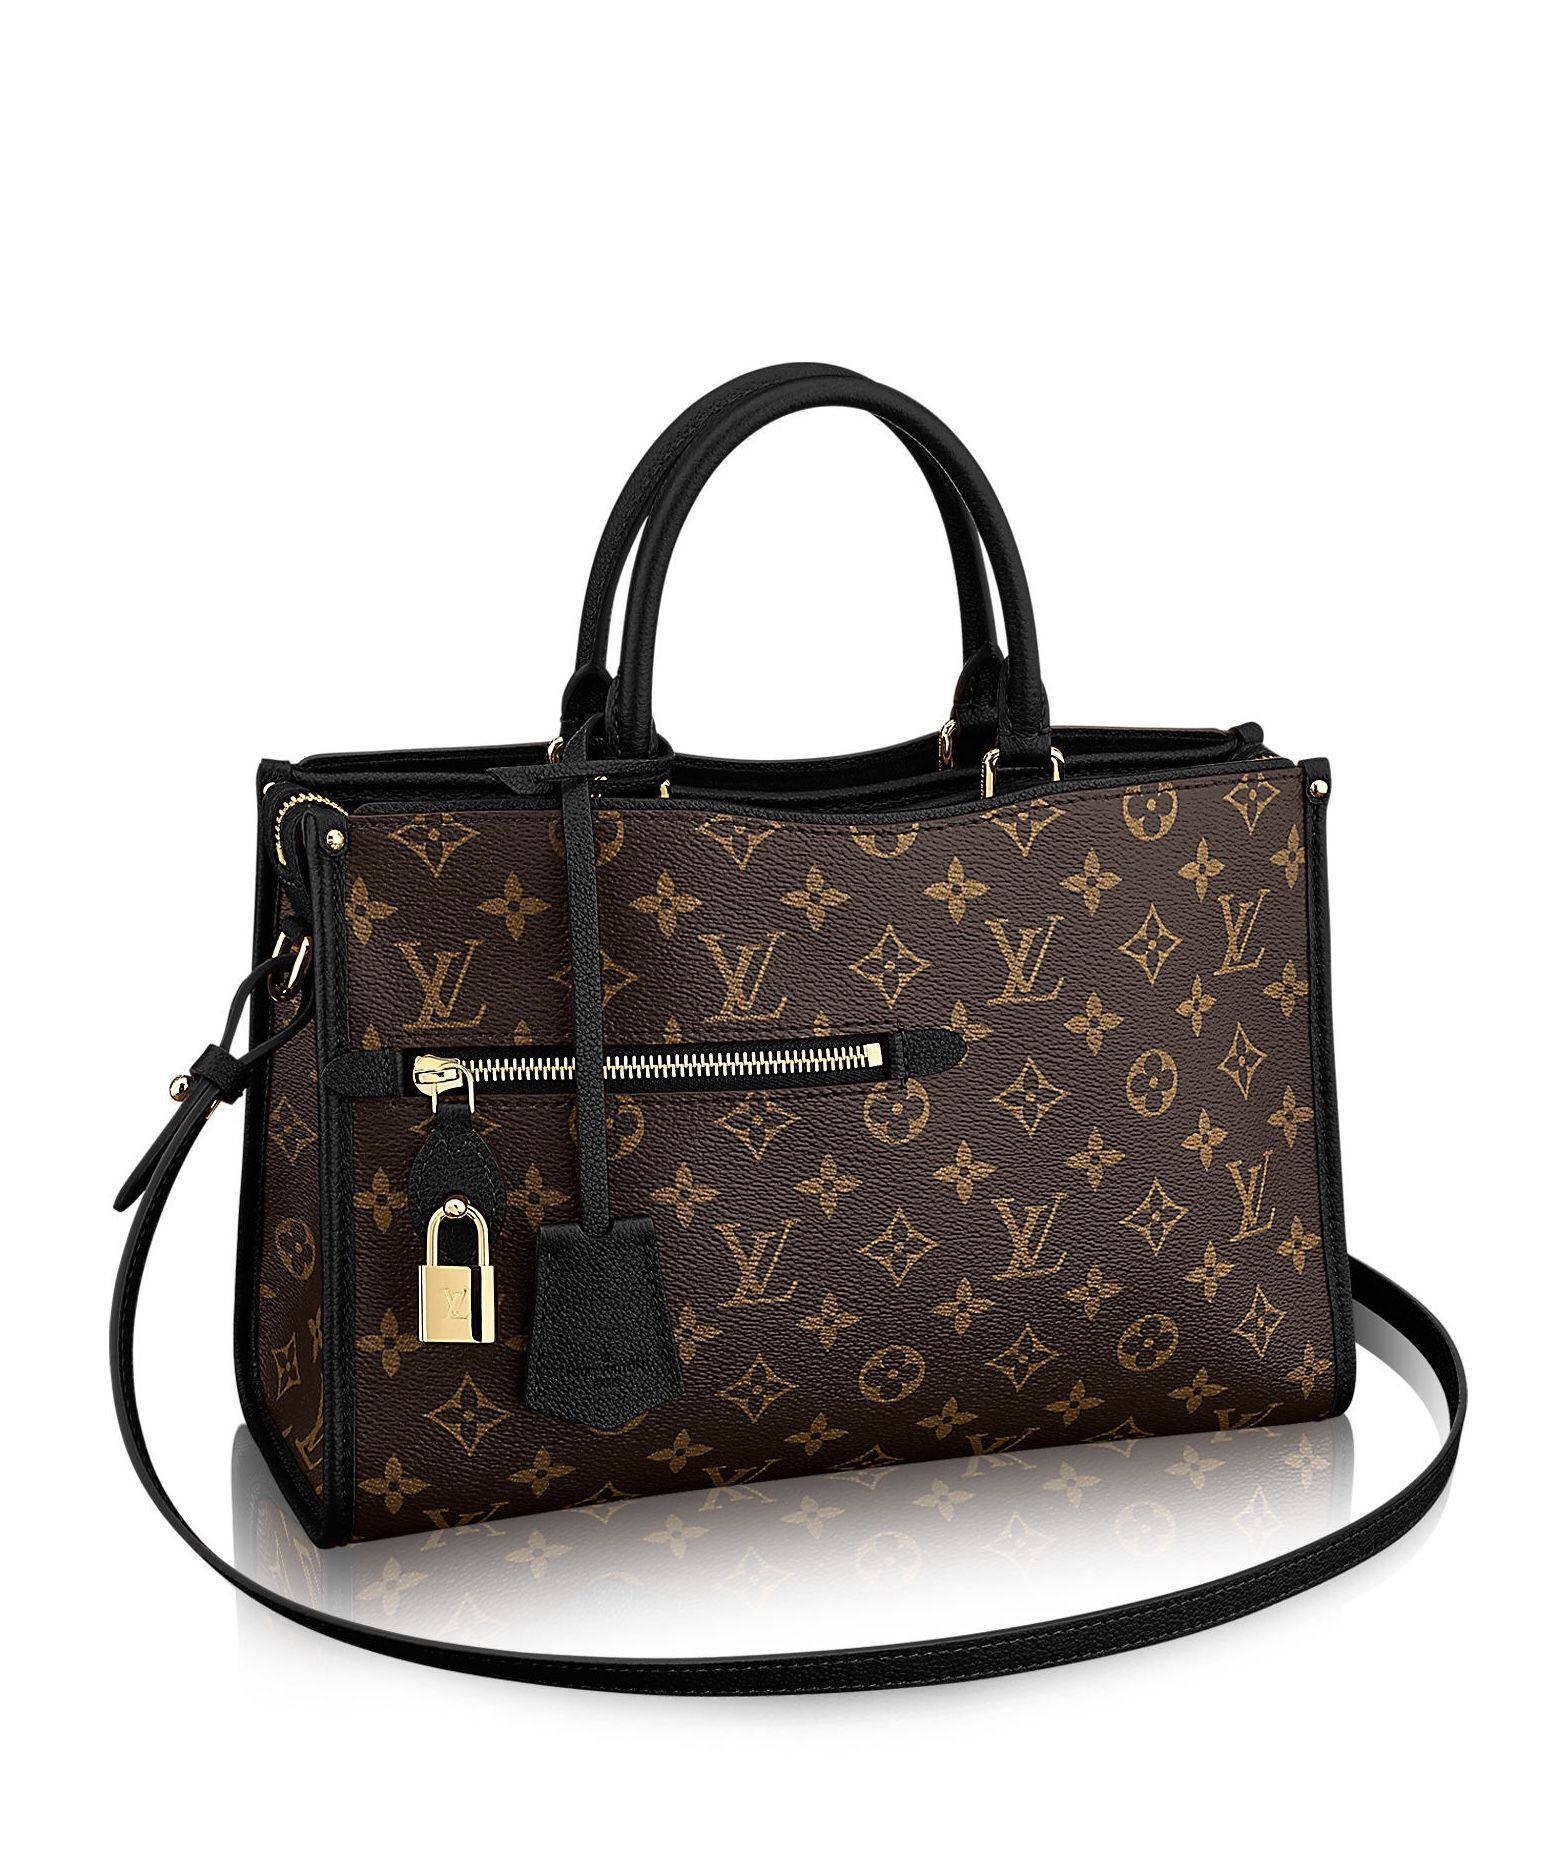 28784b19891 Louis Vuitton Popincourt MM Monogram Handbag